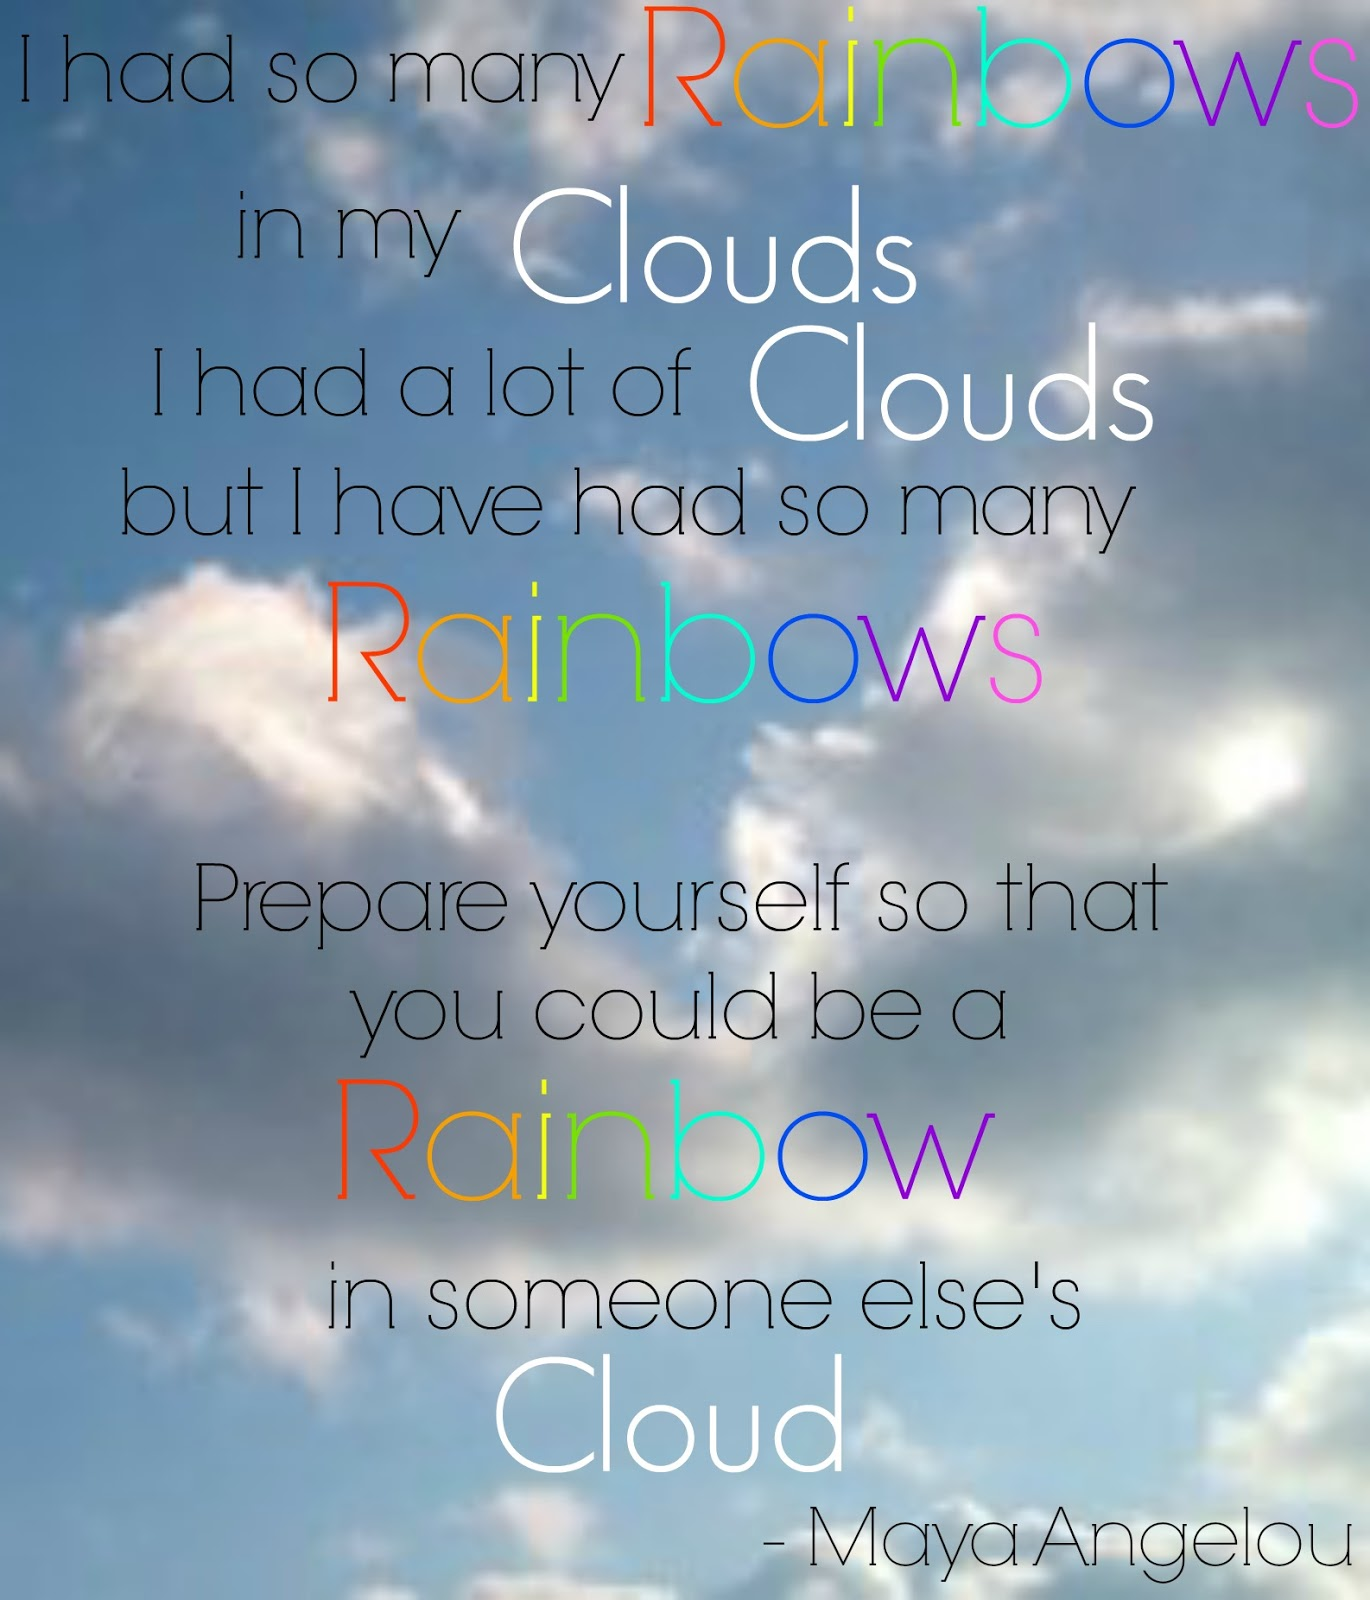 Cloud Quotes Interesting Rainbow Quotes And Sayings  Suri's First Birthday  Pinterest . Design Inspiration